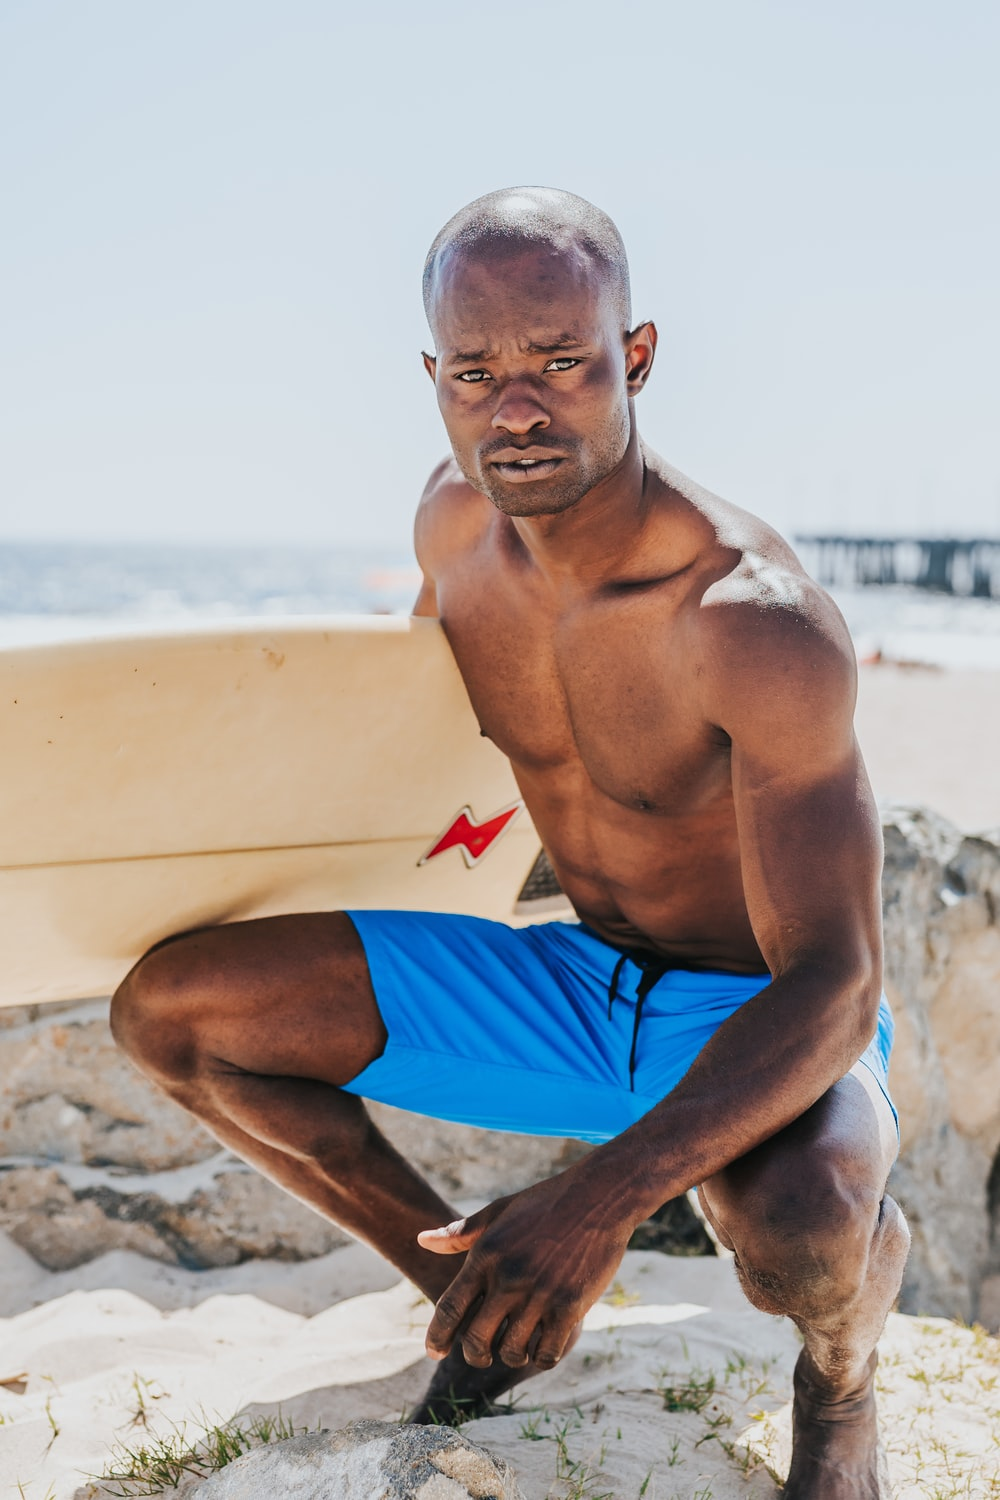 man sitting beside body of water holding white surfing board during daytime